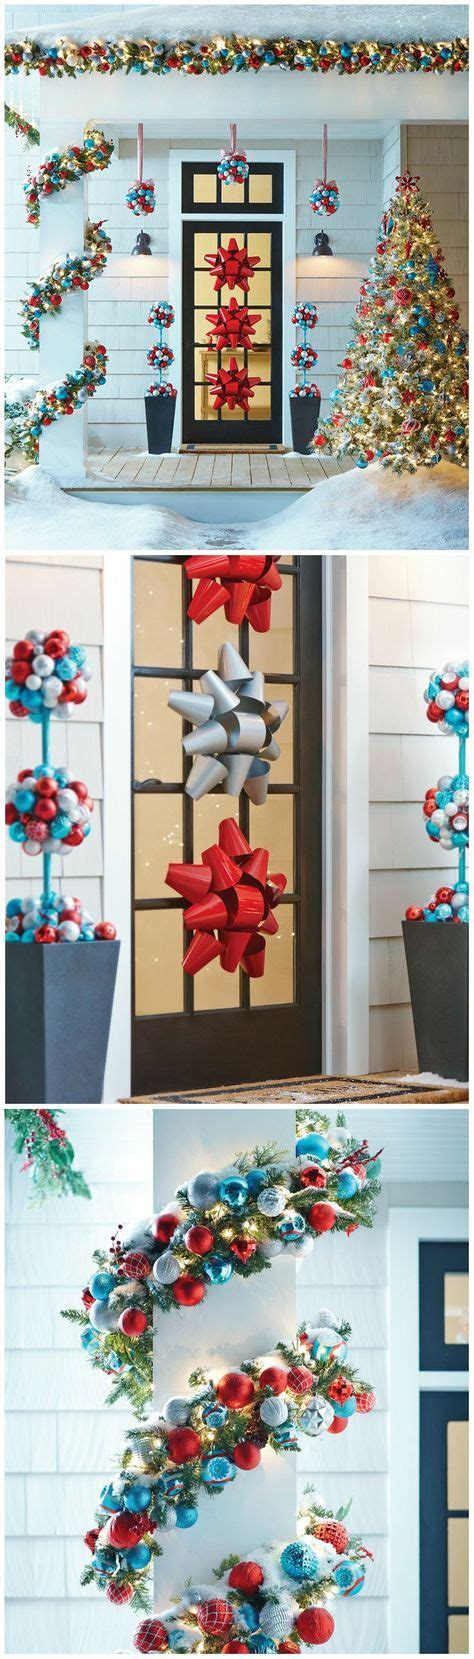 home depot holiday decorations outdoor 25 unique large outdoor christmas decorations ideas on